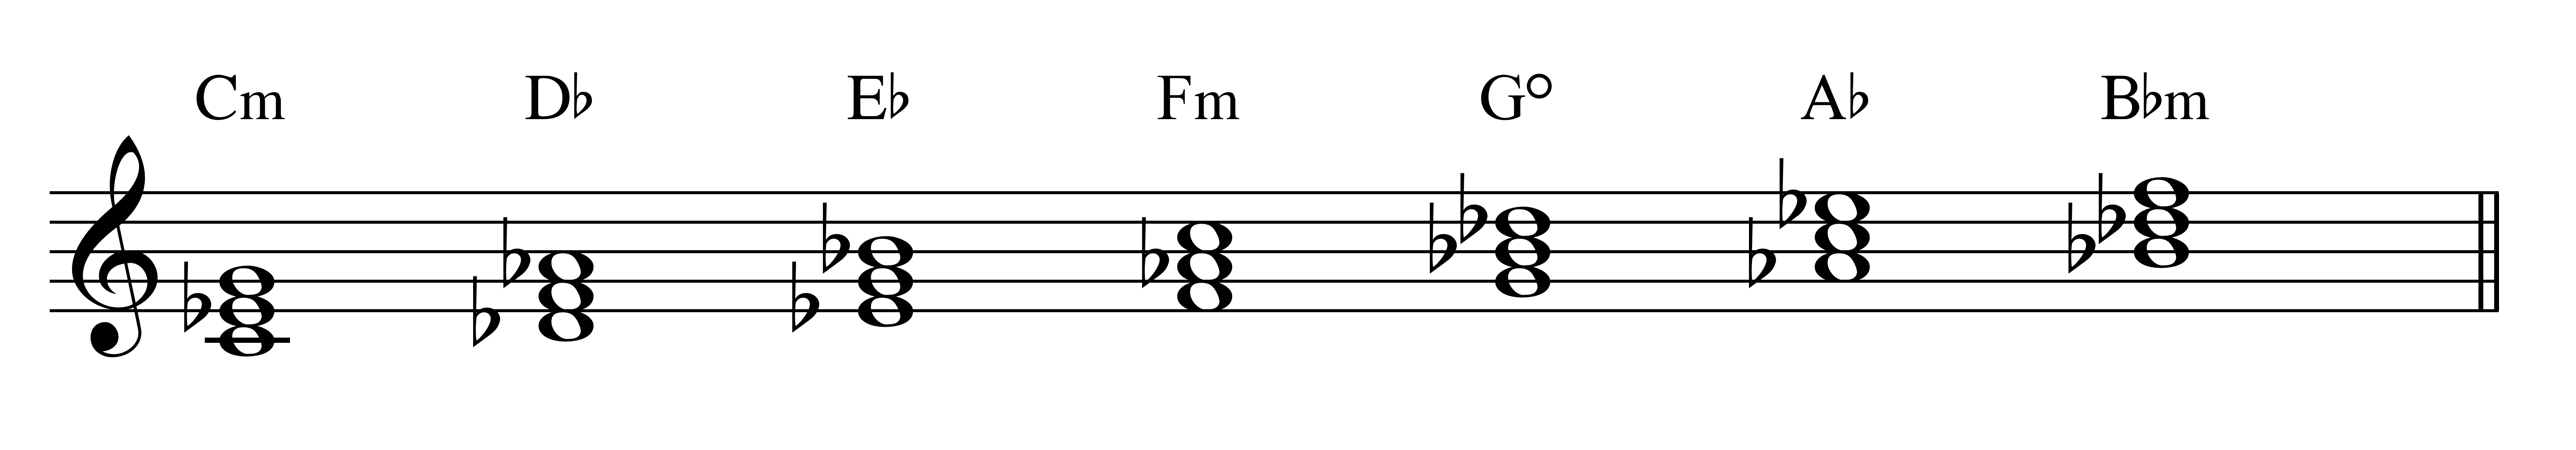 Scale of the day 4 the phrygian mode elissa milne this combination creates a quite positive spin on the extremely minor pattern as the minor key chord rises to two major chords hexwebz Images